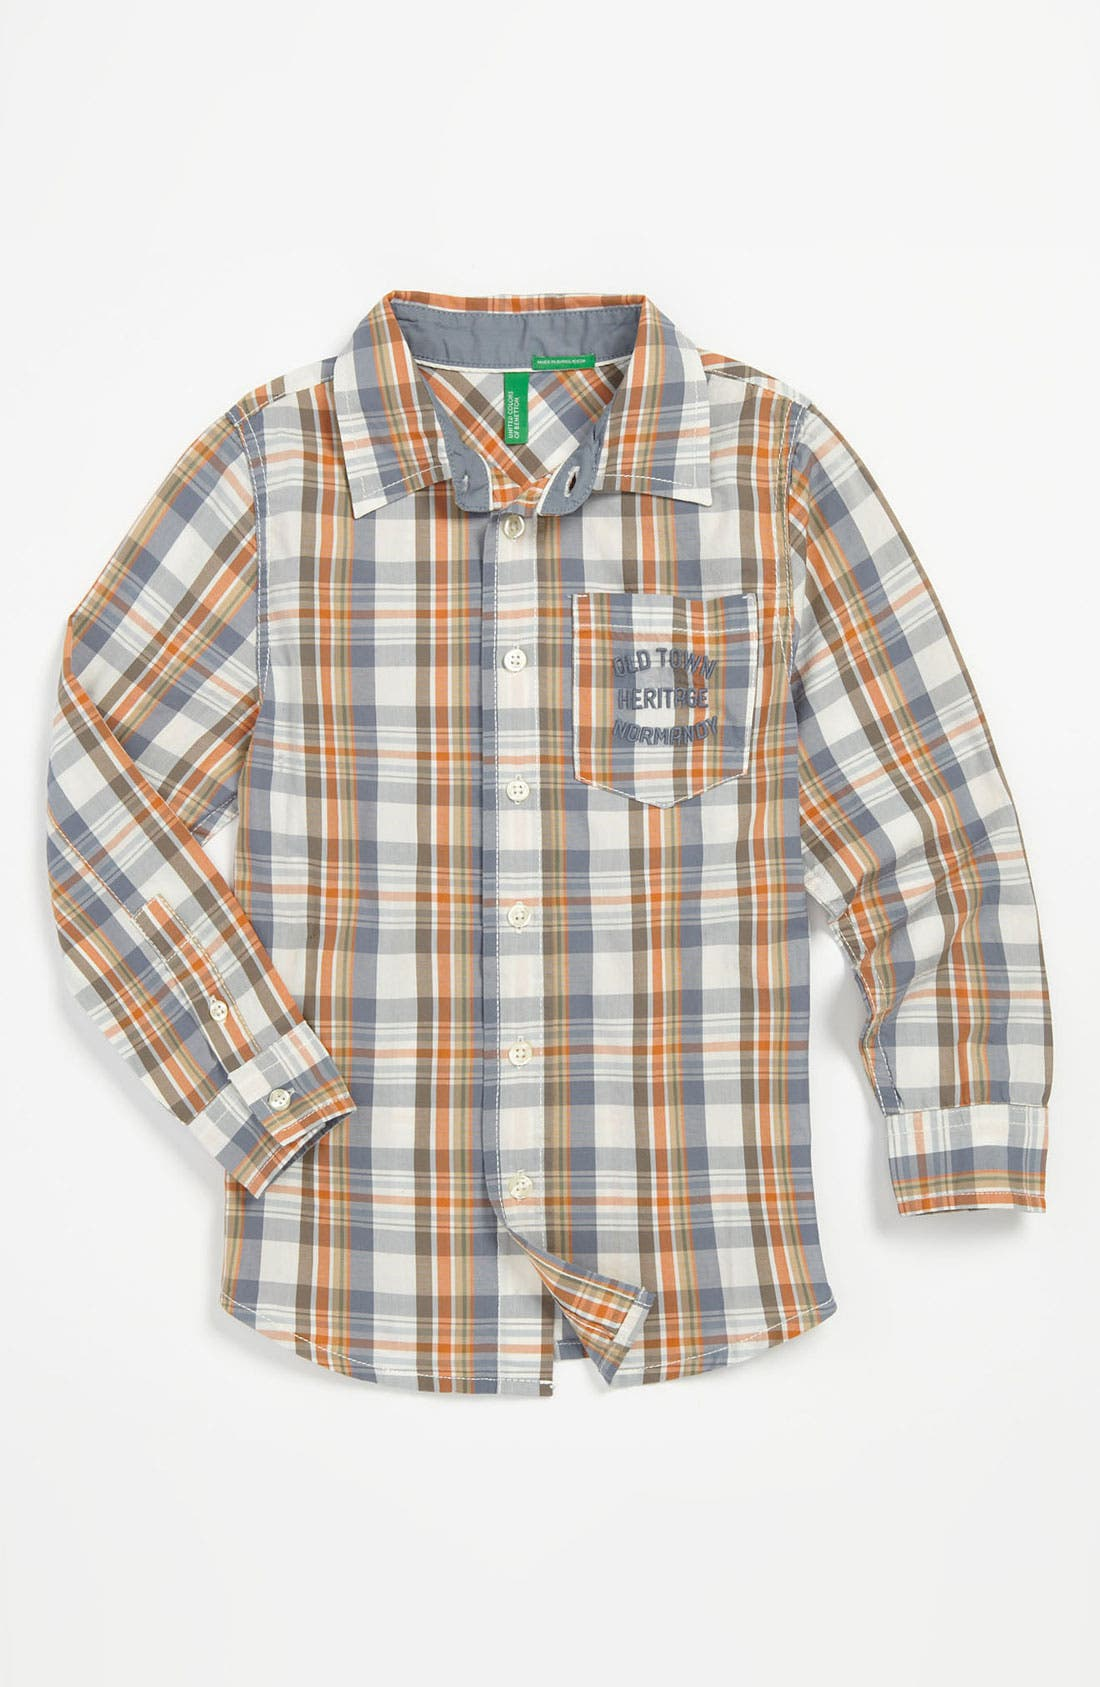 Alternate Image 1 Selected - United Colors of Benetton Kids Woven Shirt (Toddler)